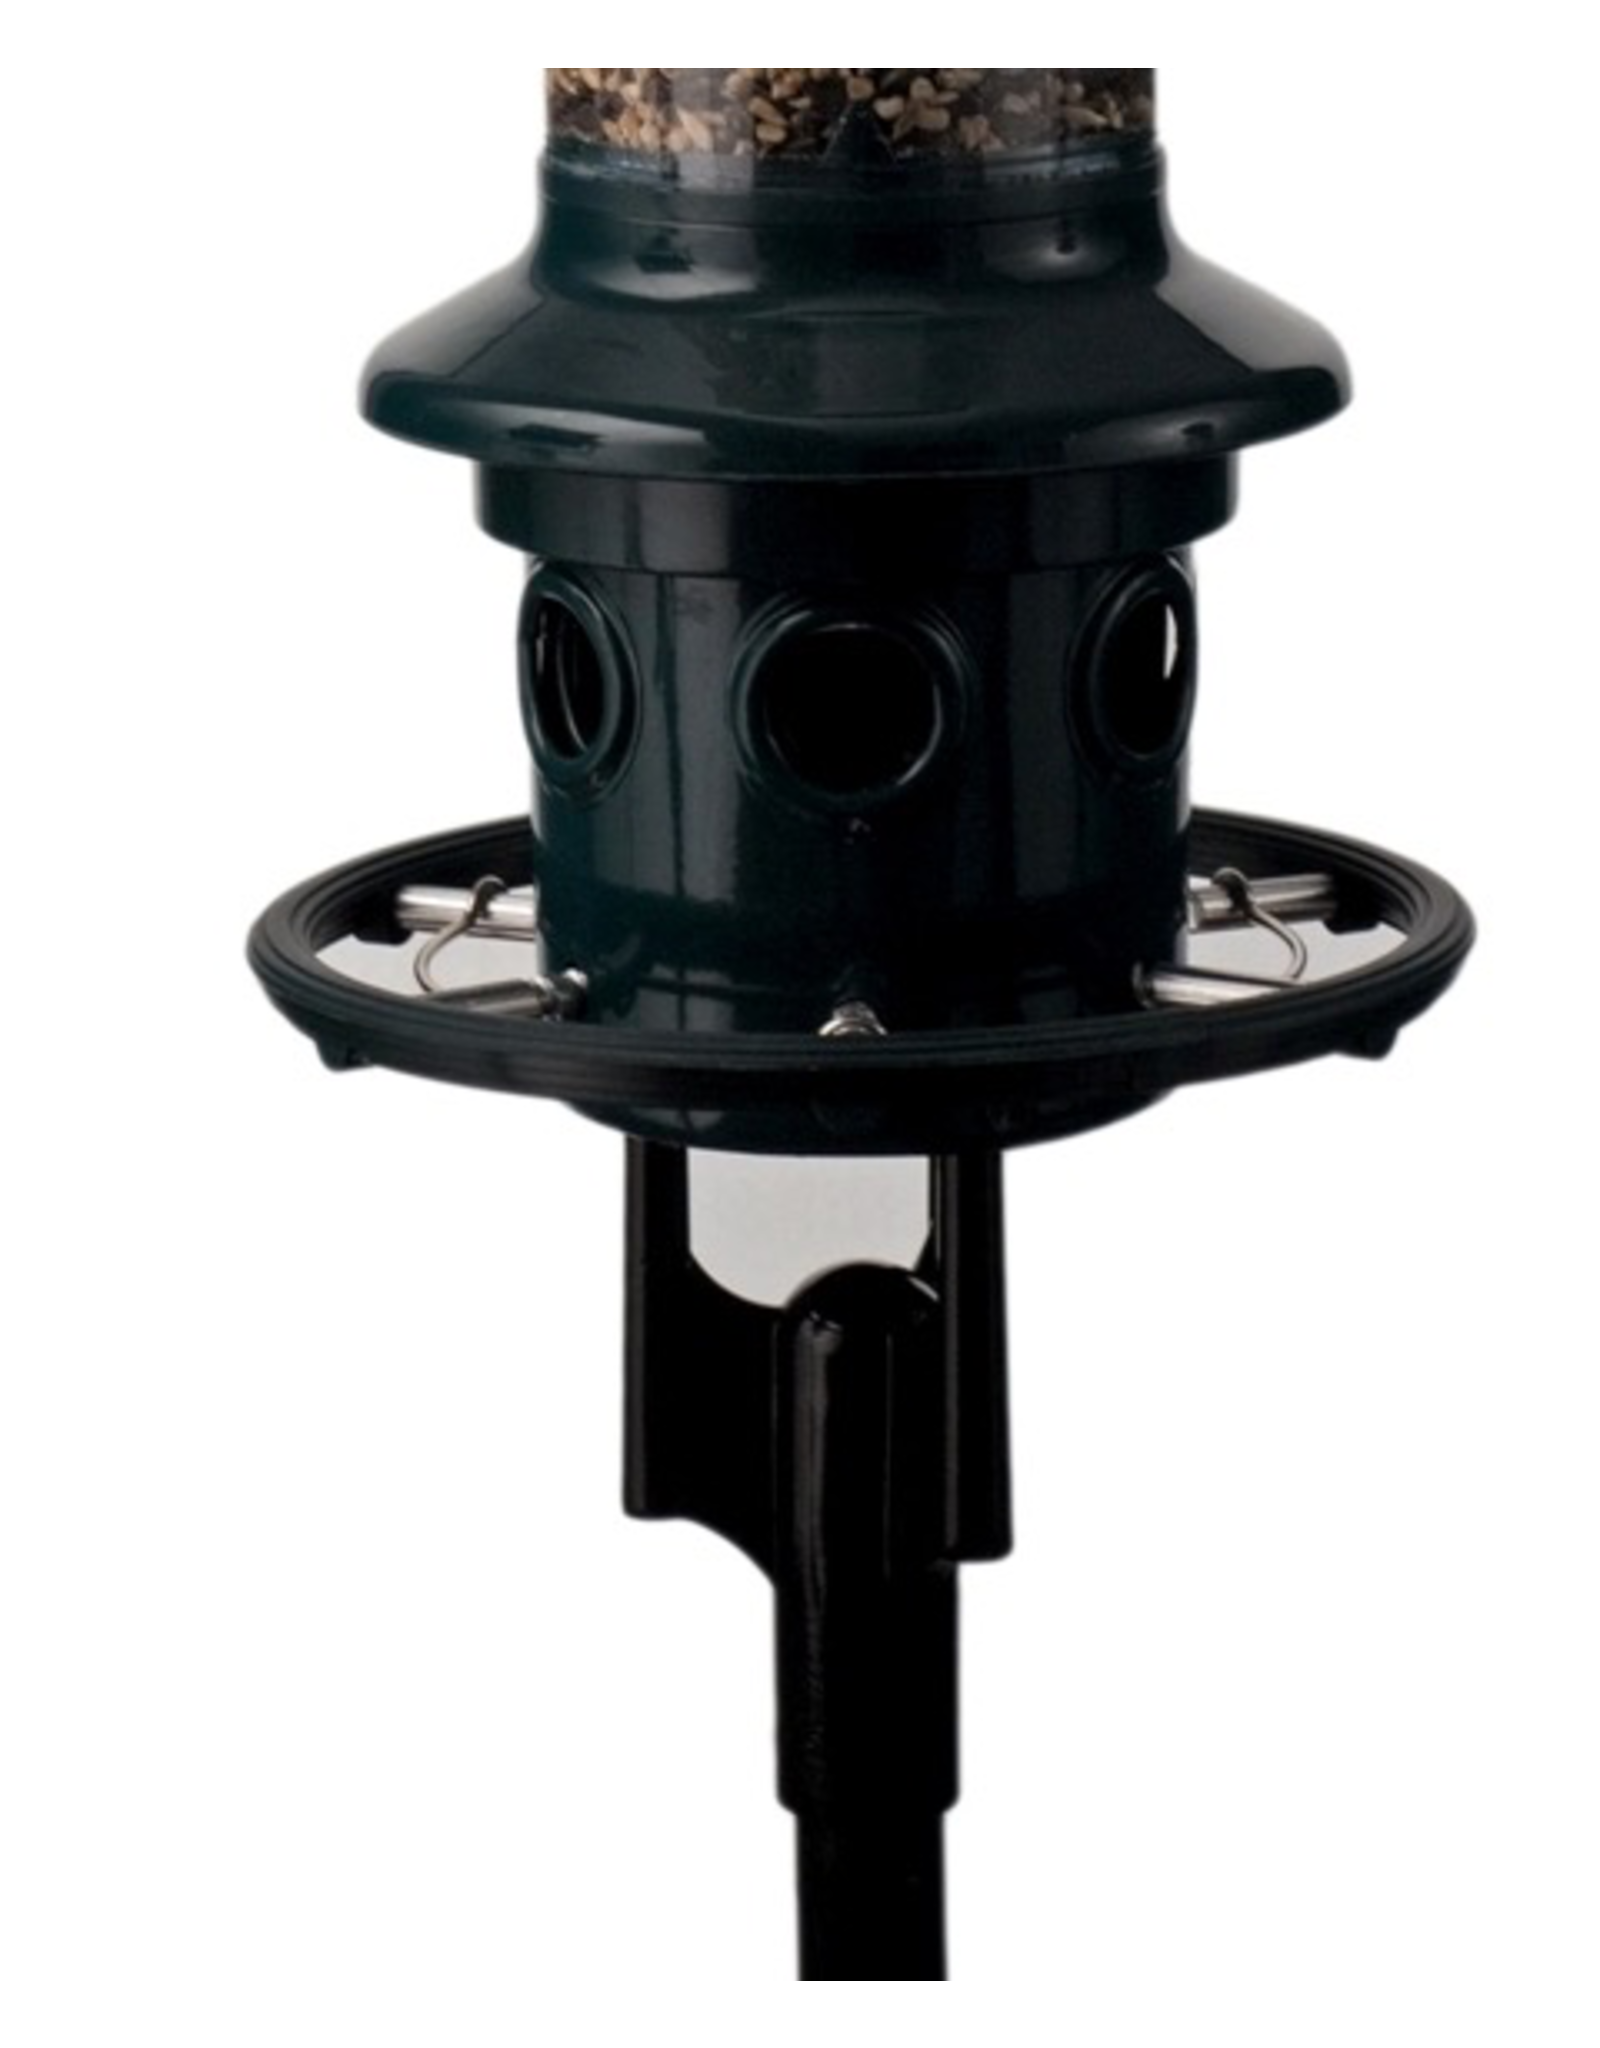 Brome/Squirrel Buster SQB1025 Squirrel Buster pole mount